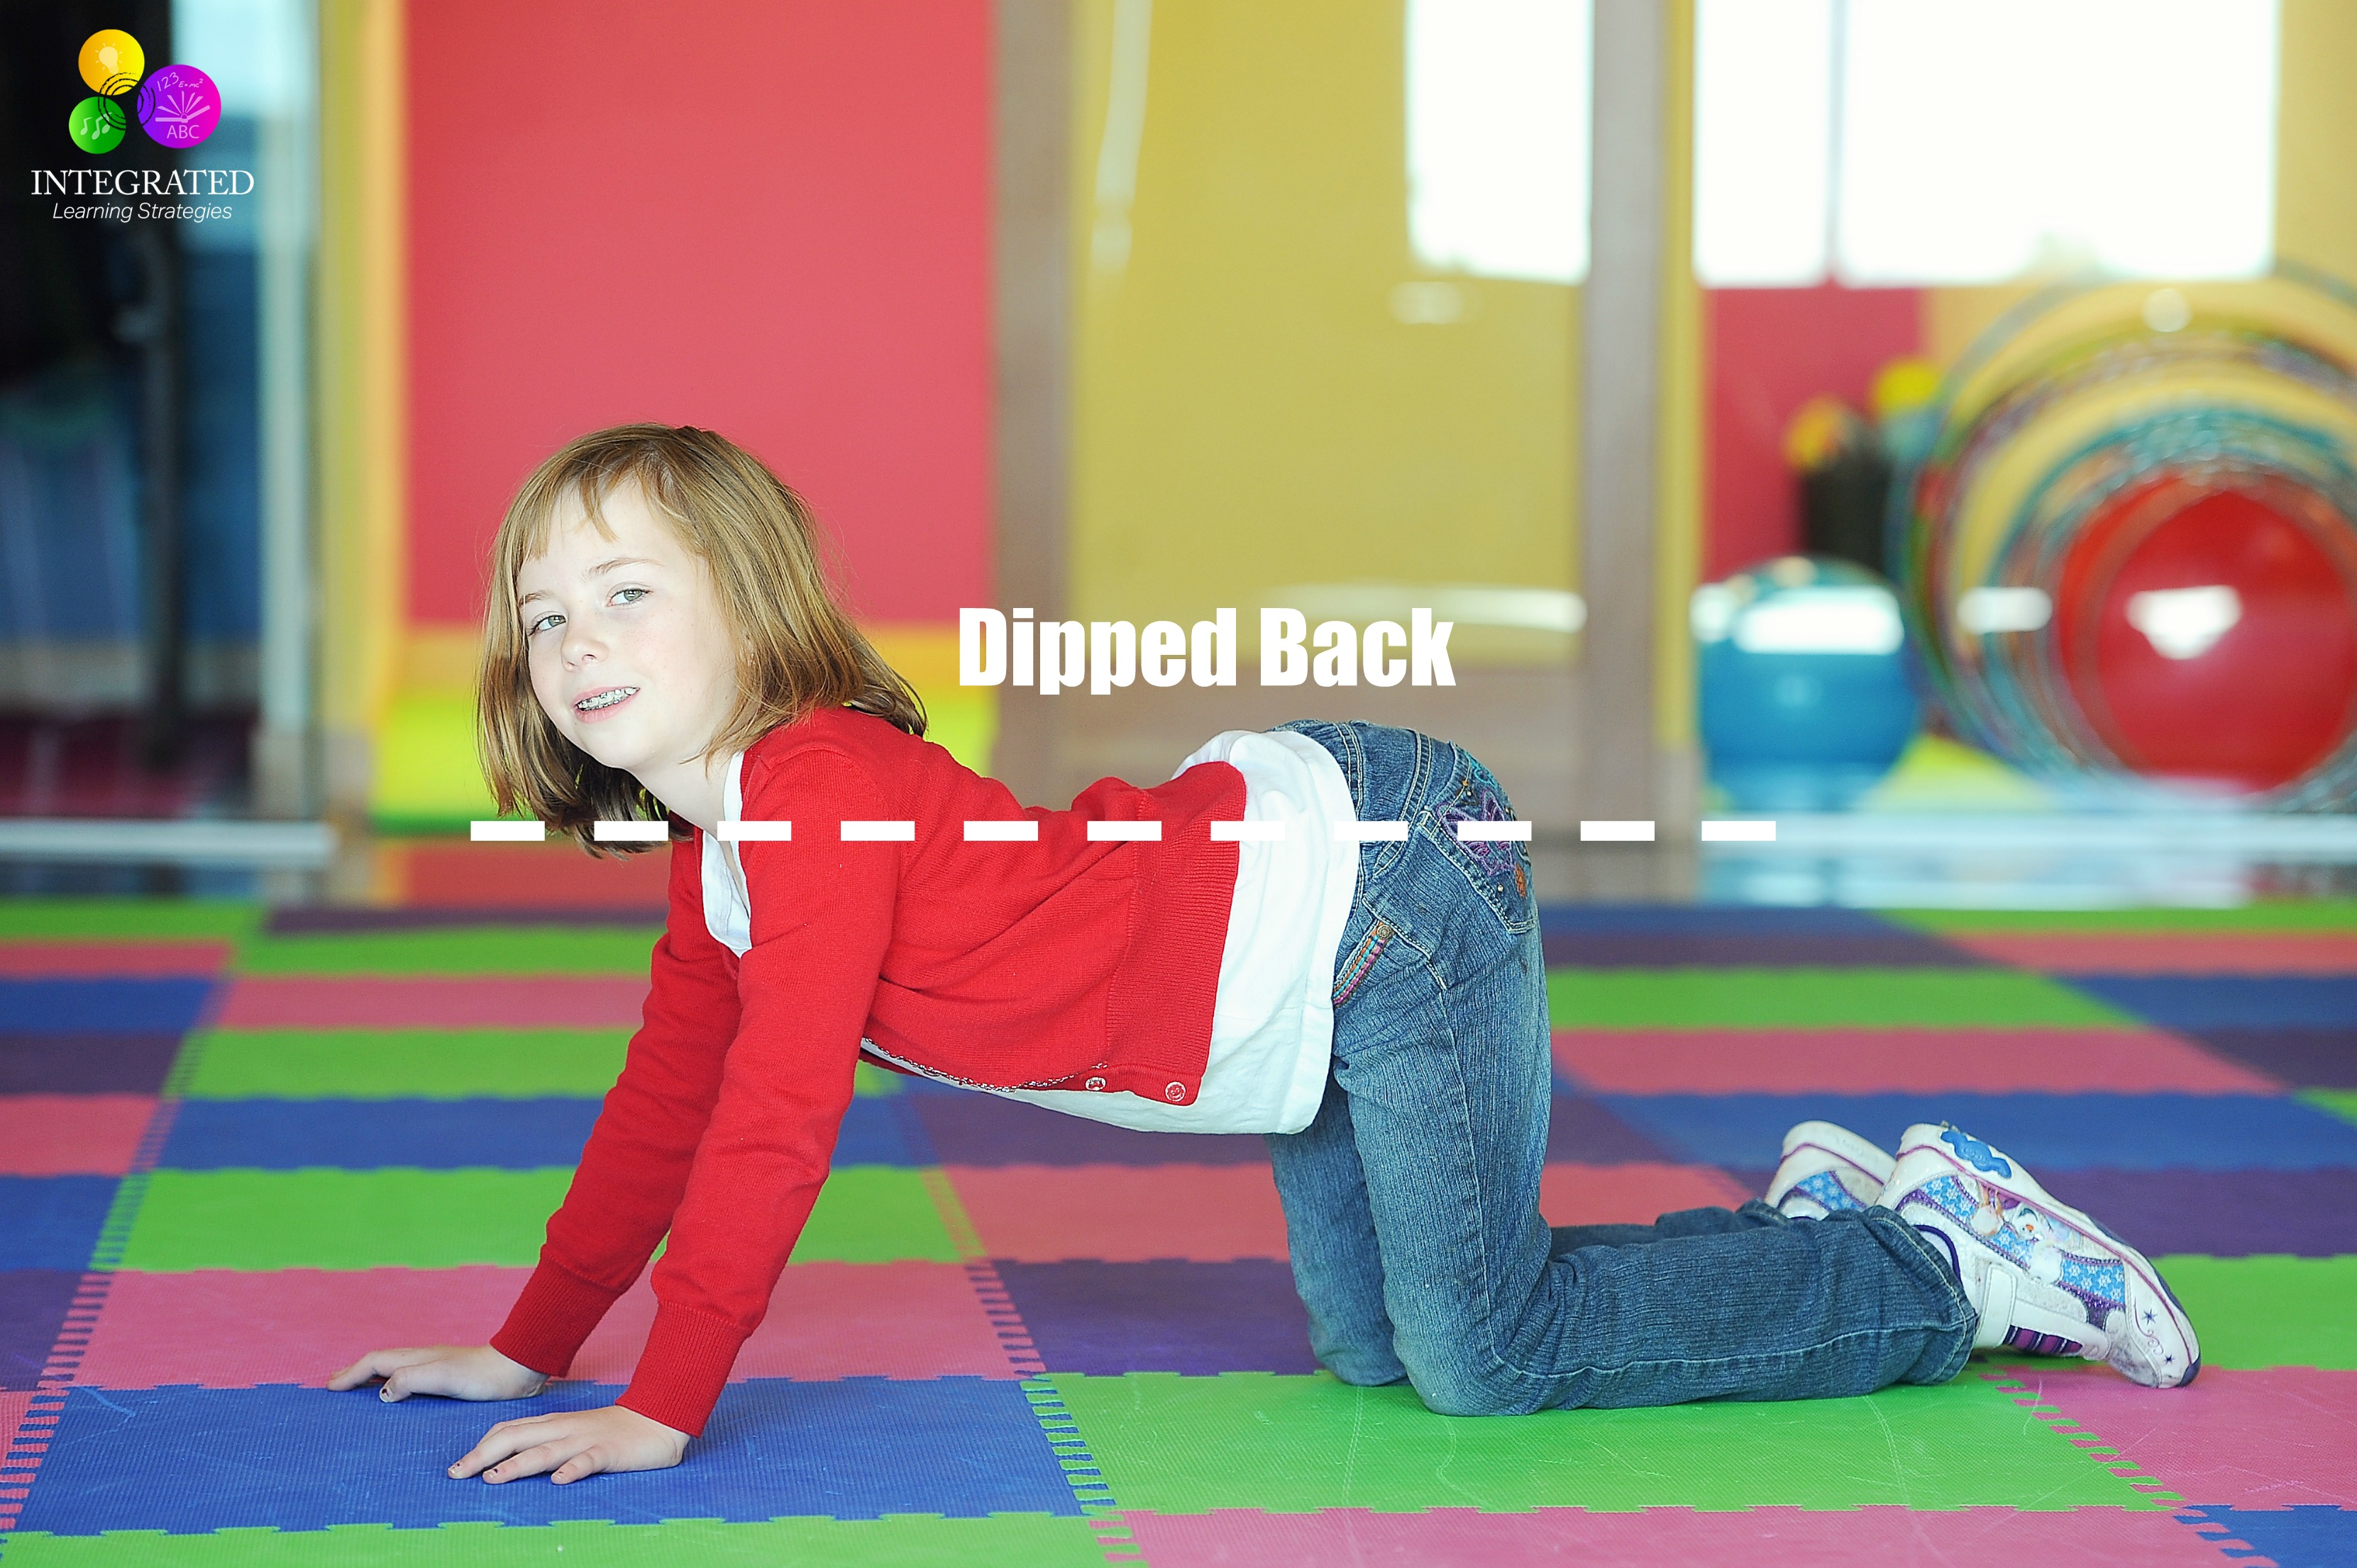 Primitive Reflexes The Answer Behind W Sitting And How To